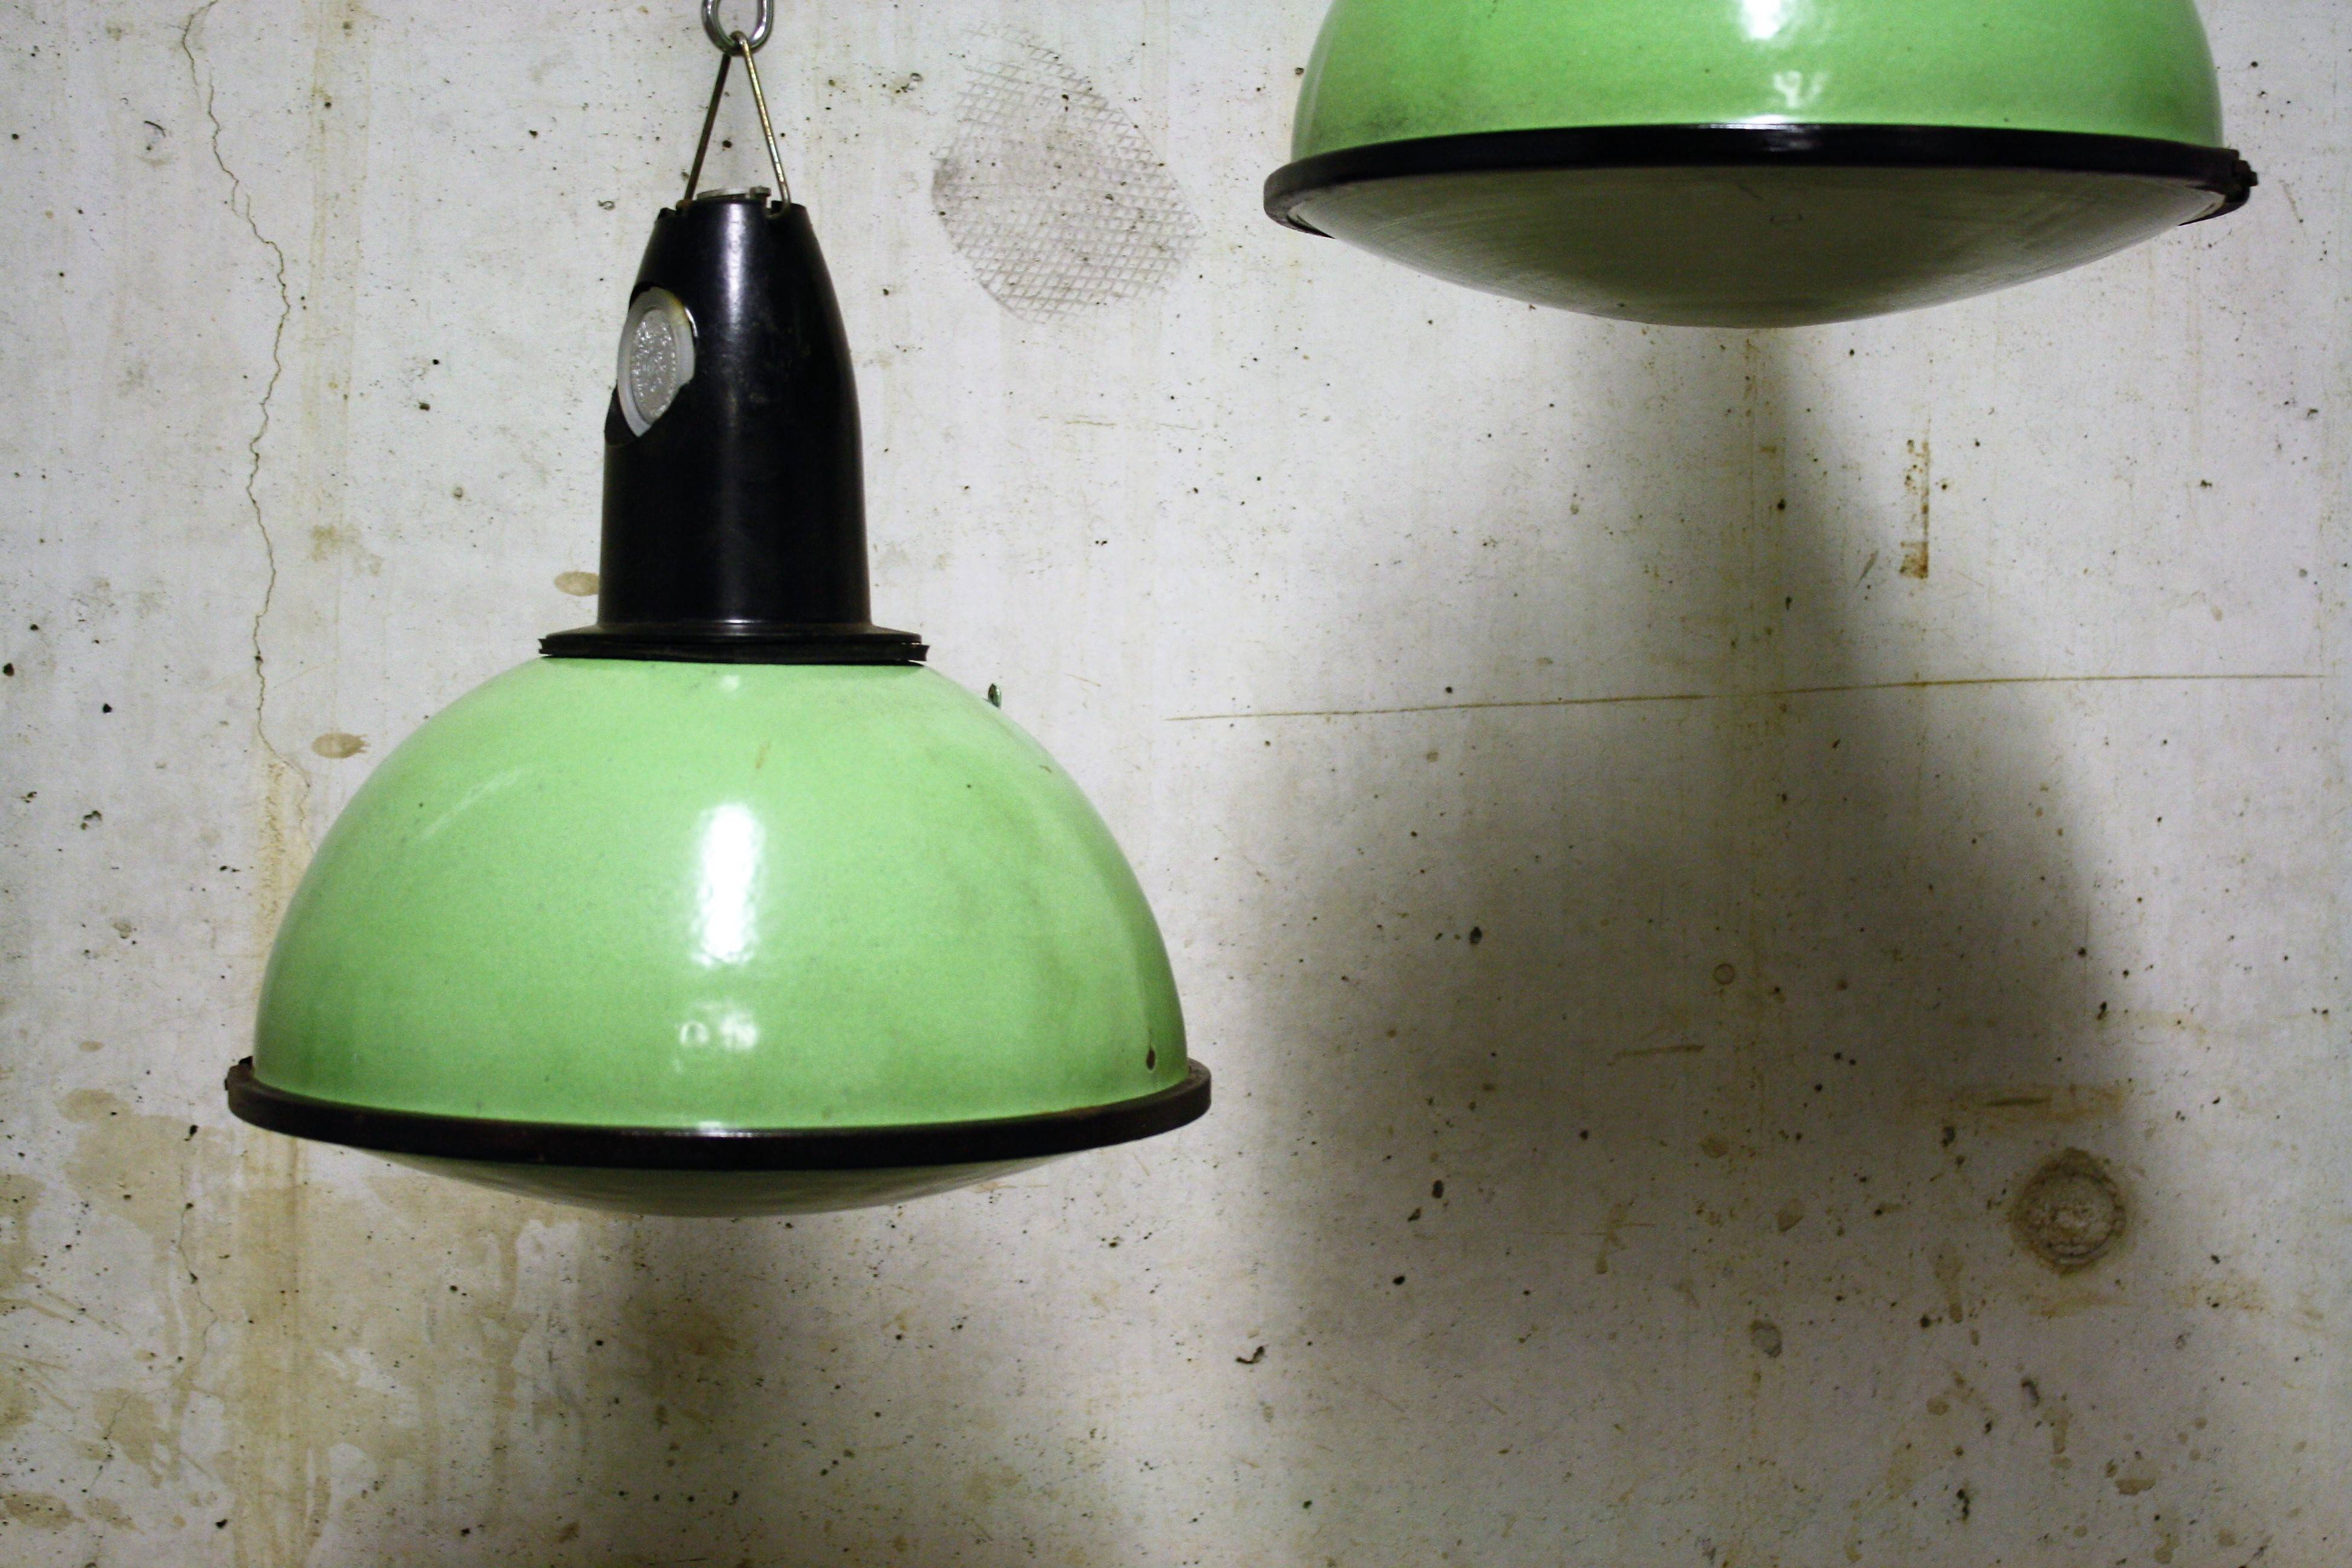 Green Industrial Pendant Lights With Glass 1960S (6Pcs) | Vinterior With 1960S Pendant Lights (View 12 of 15)